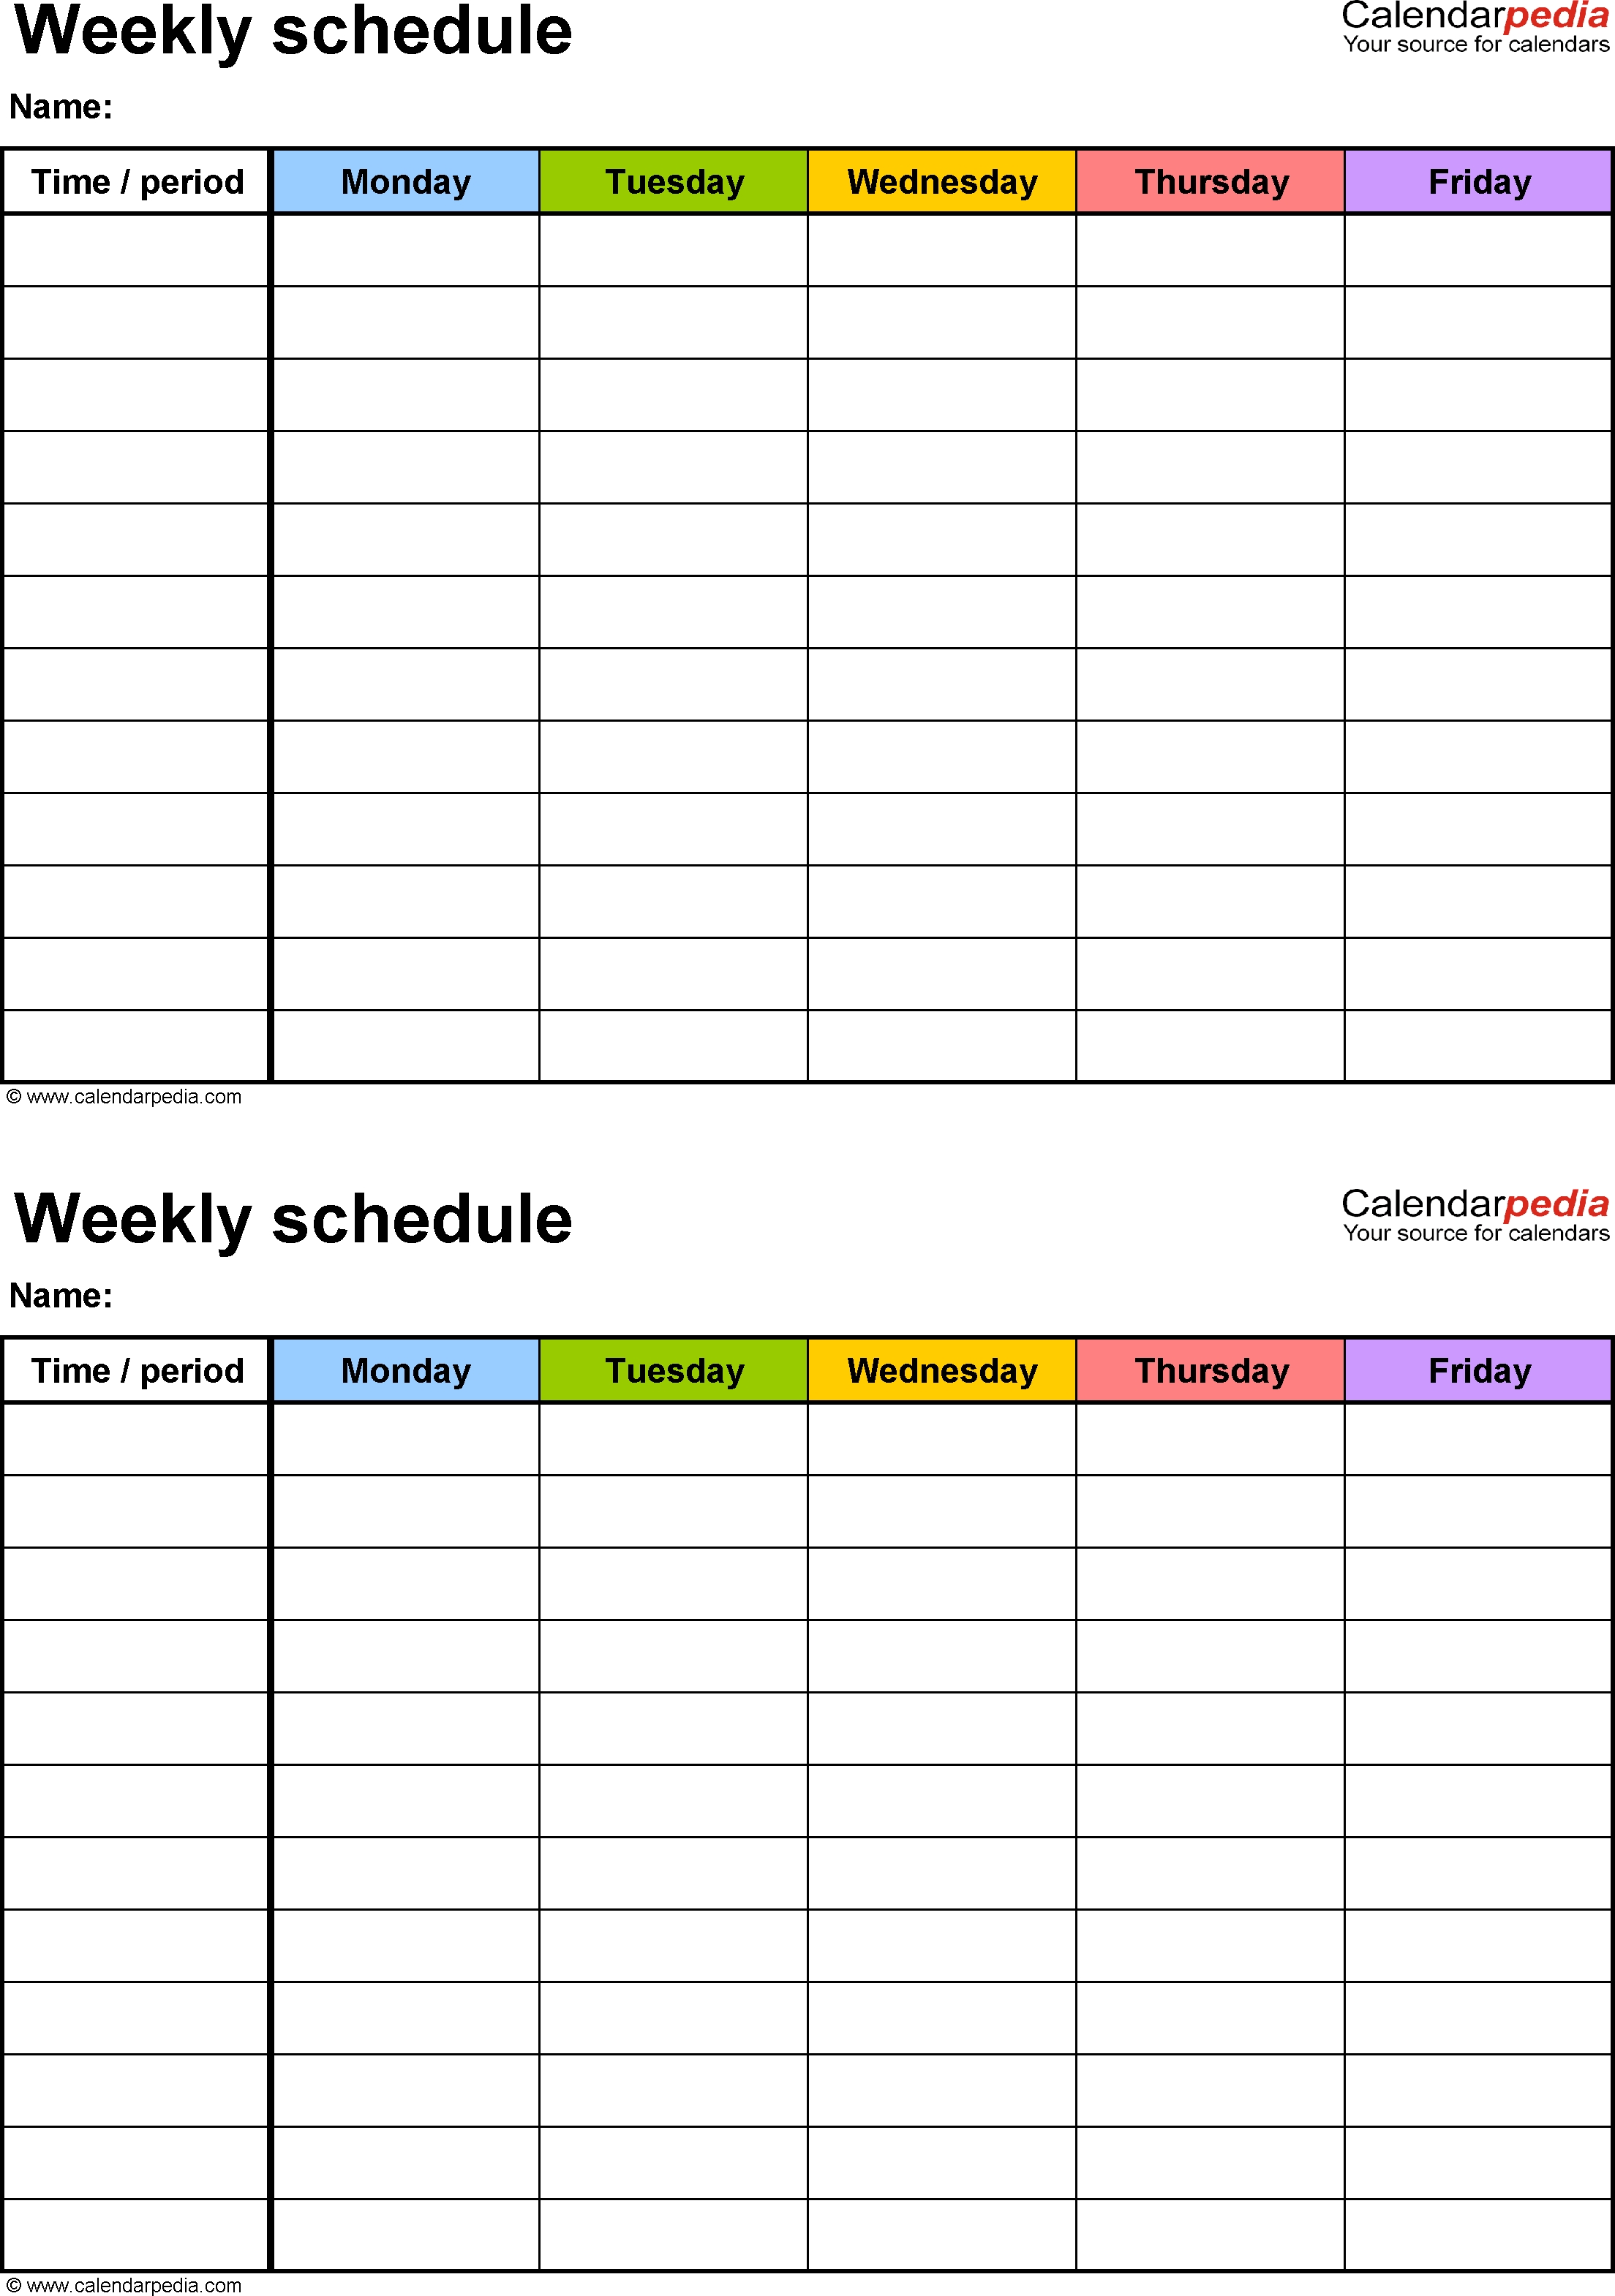 Free Weekly Schedule Templates For Word - 18 Templates for Blank Two Week Calendar Template